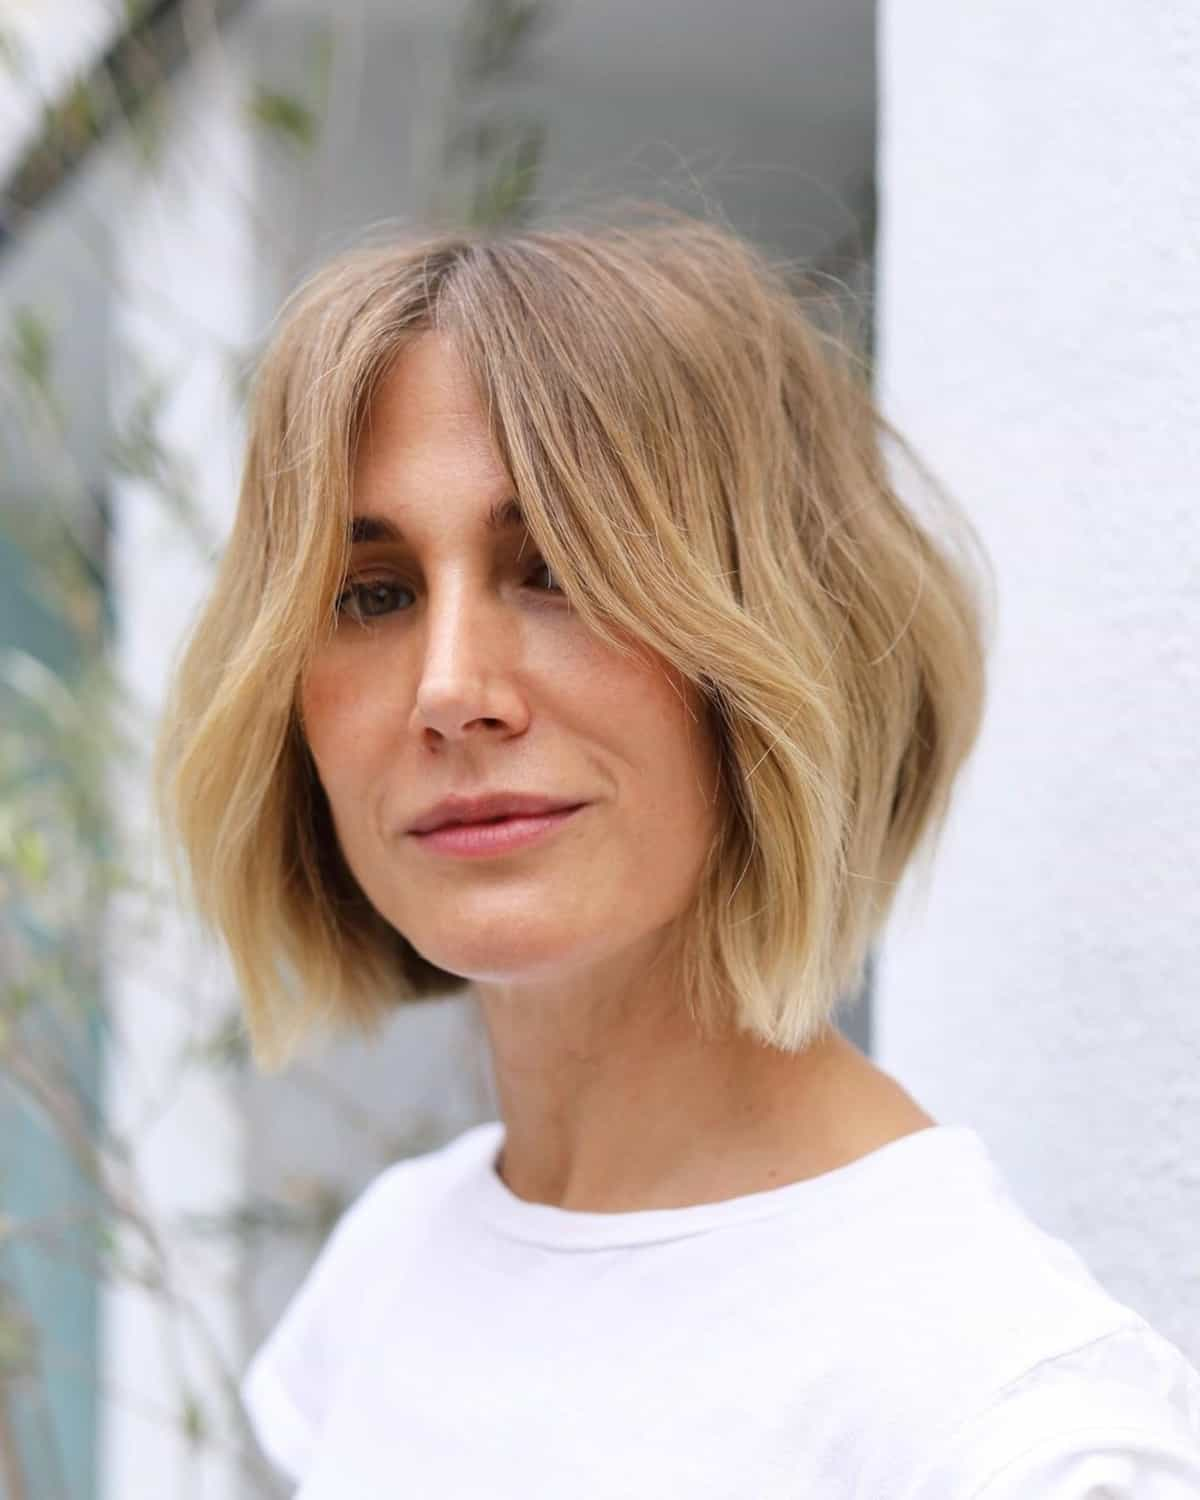 Organic short wavy hair for a woman over 40